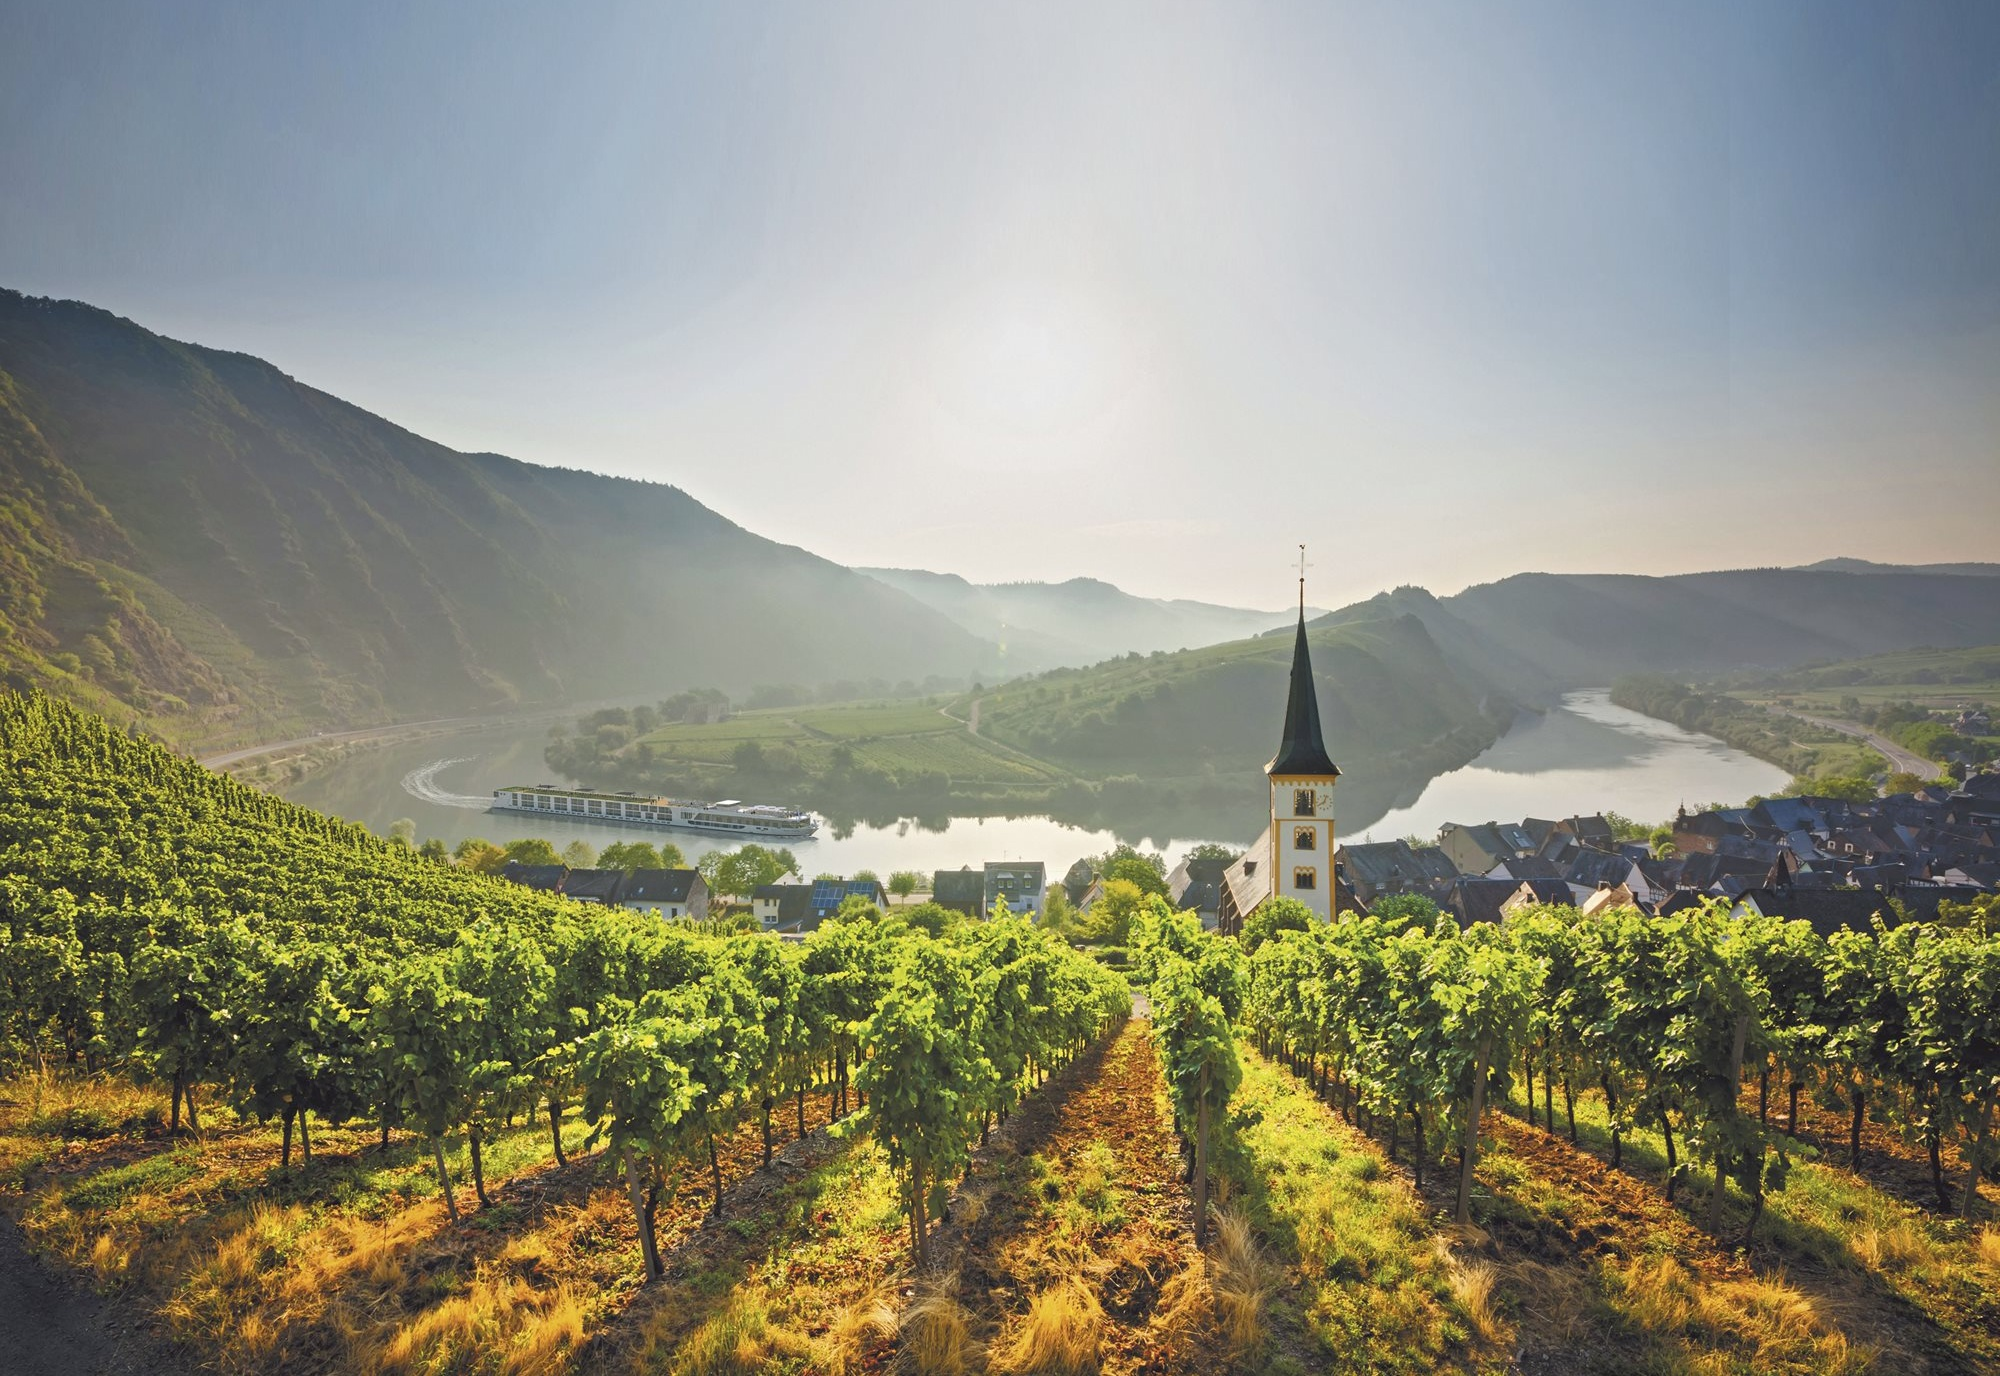 Romantic Rhine & Moselle - 15-Day Cruise between Basel and AmsterdamOctober 23 - November 6, 2019